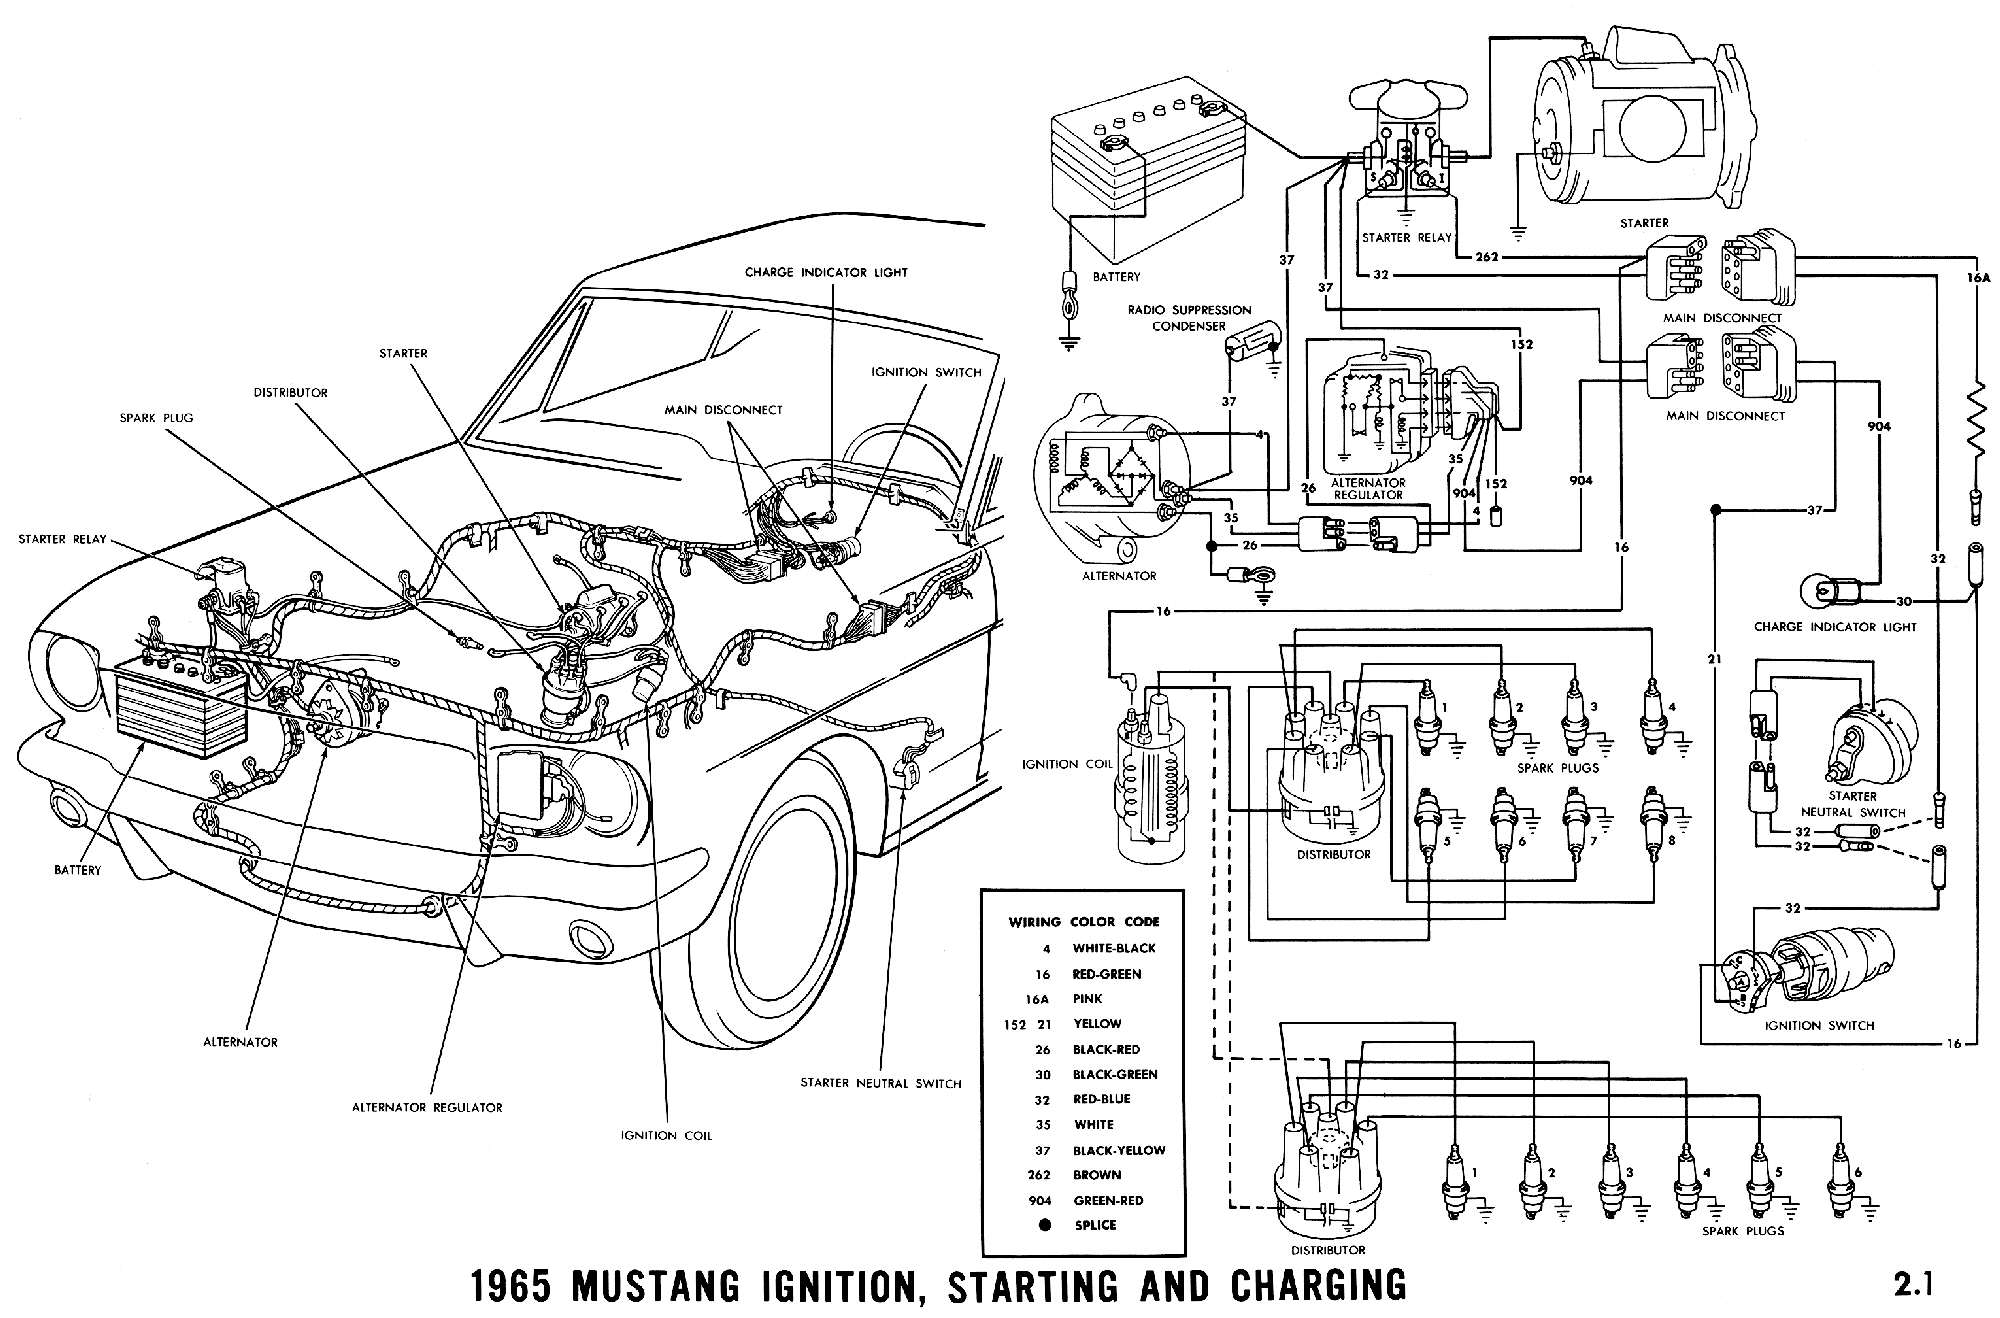 1965c 1965 mustang wiring diagrams average joe restoration 67 mustang complete wiring harness at gsmx.co